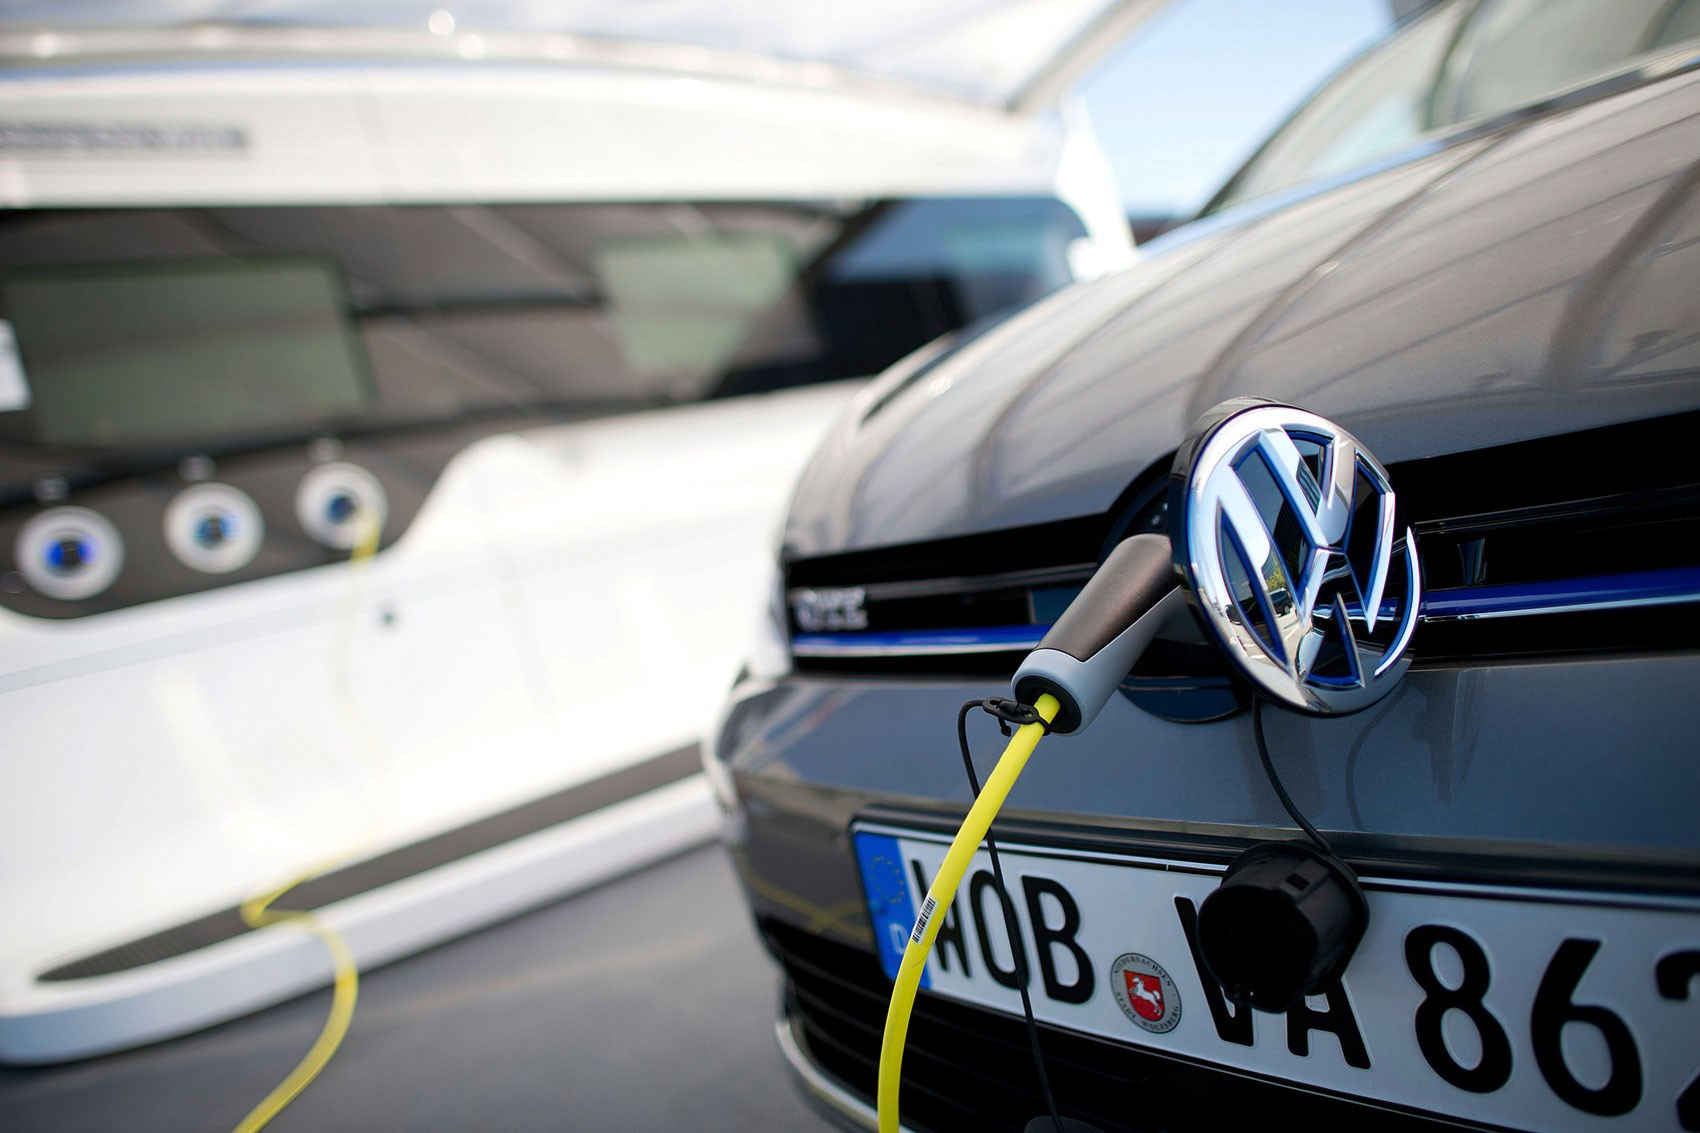 Volkswagen S Emissions Cheat Software Scandal The